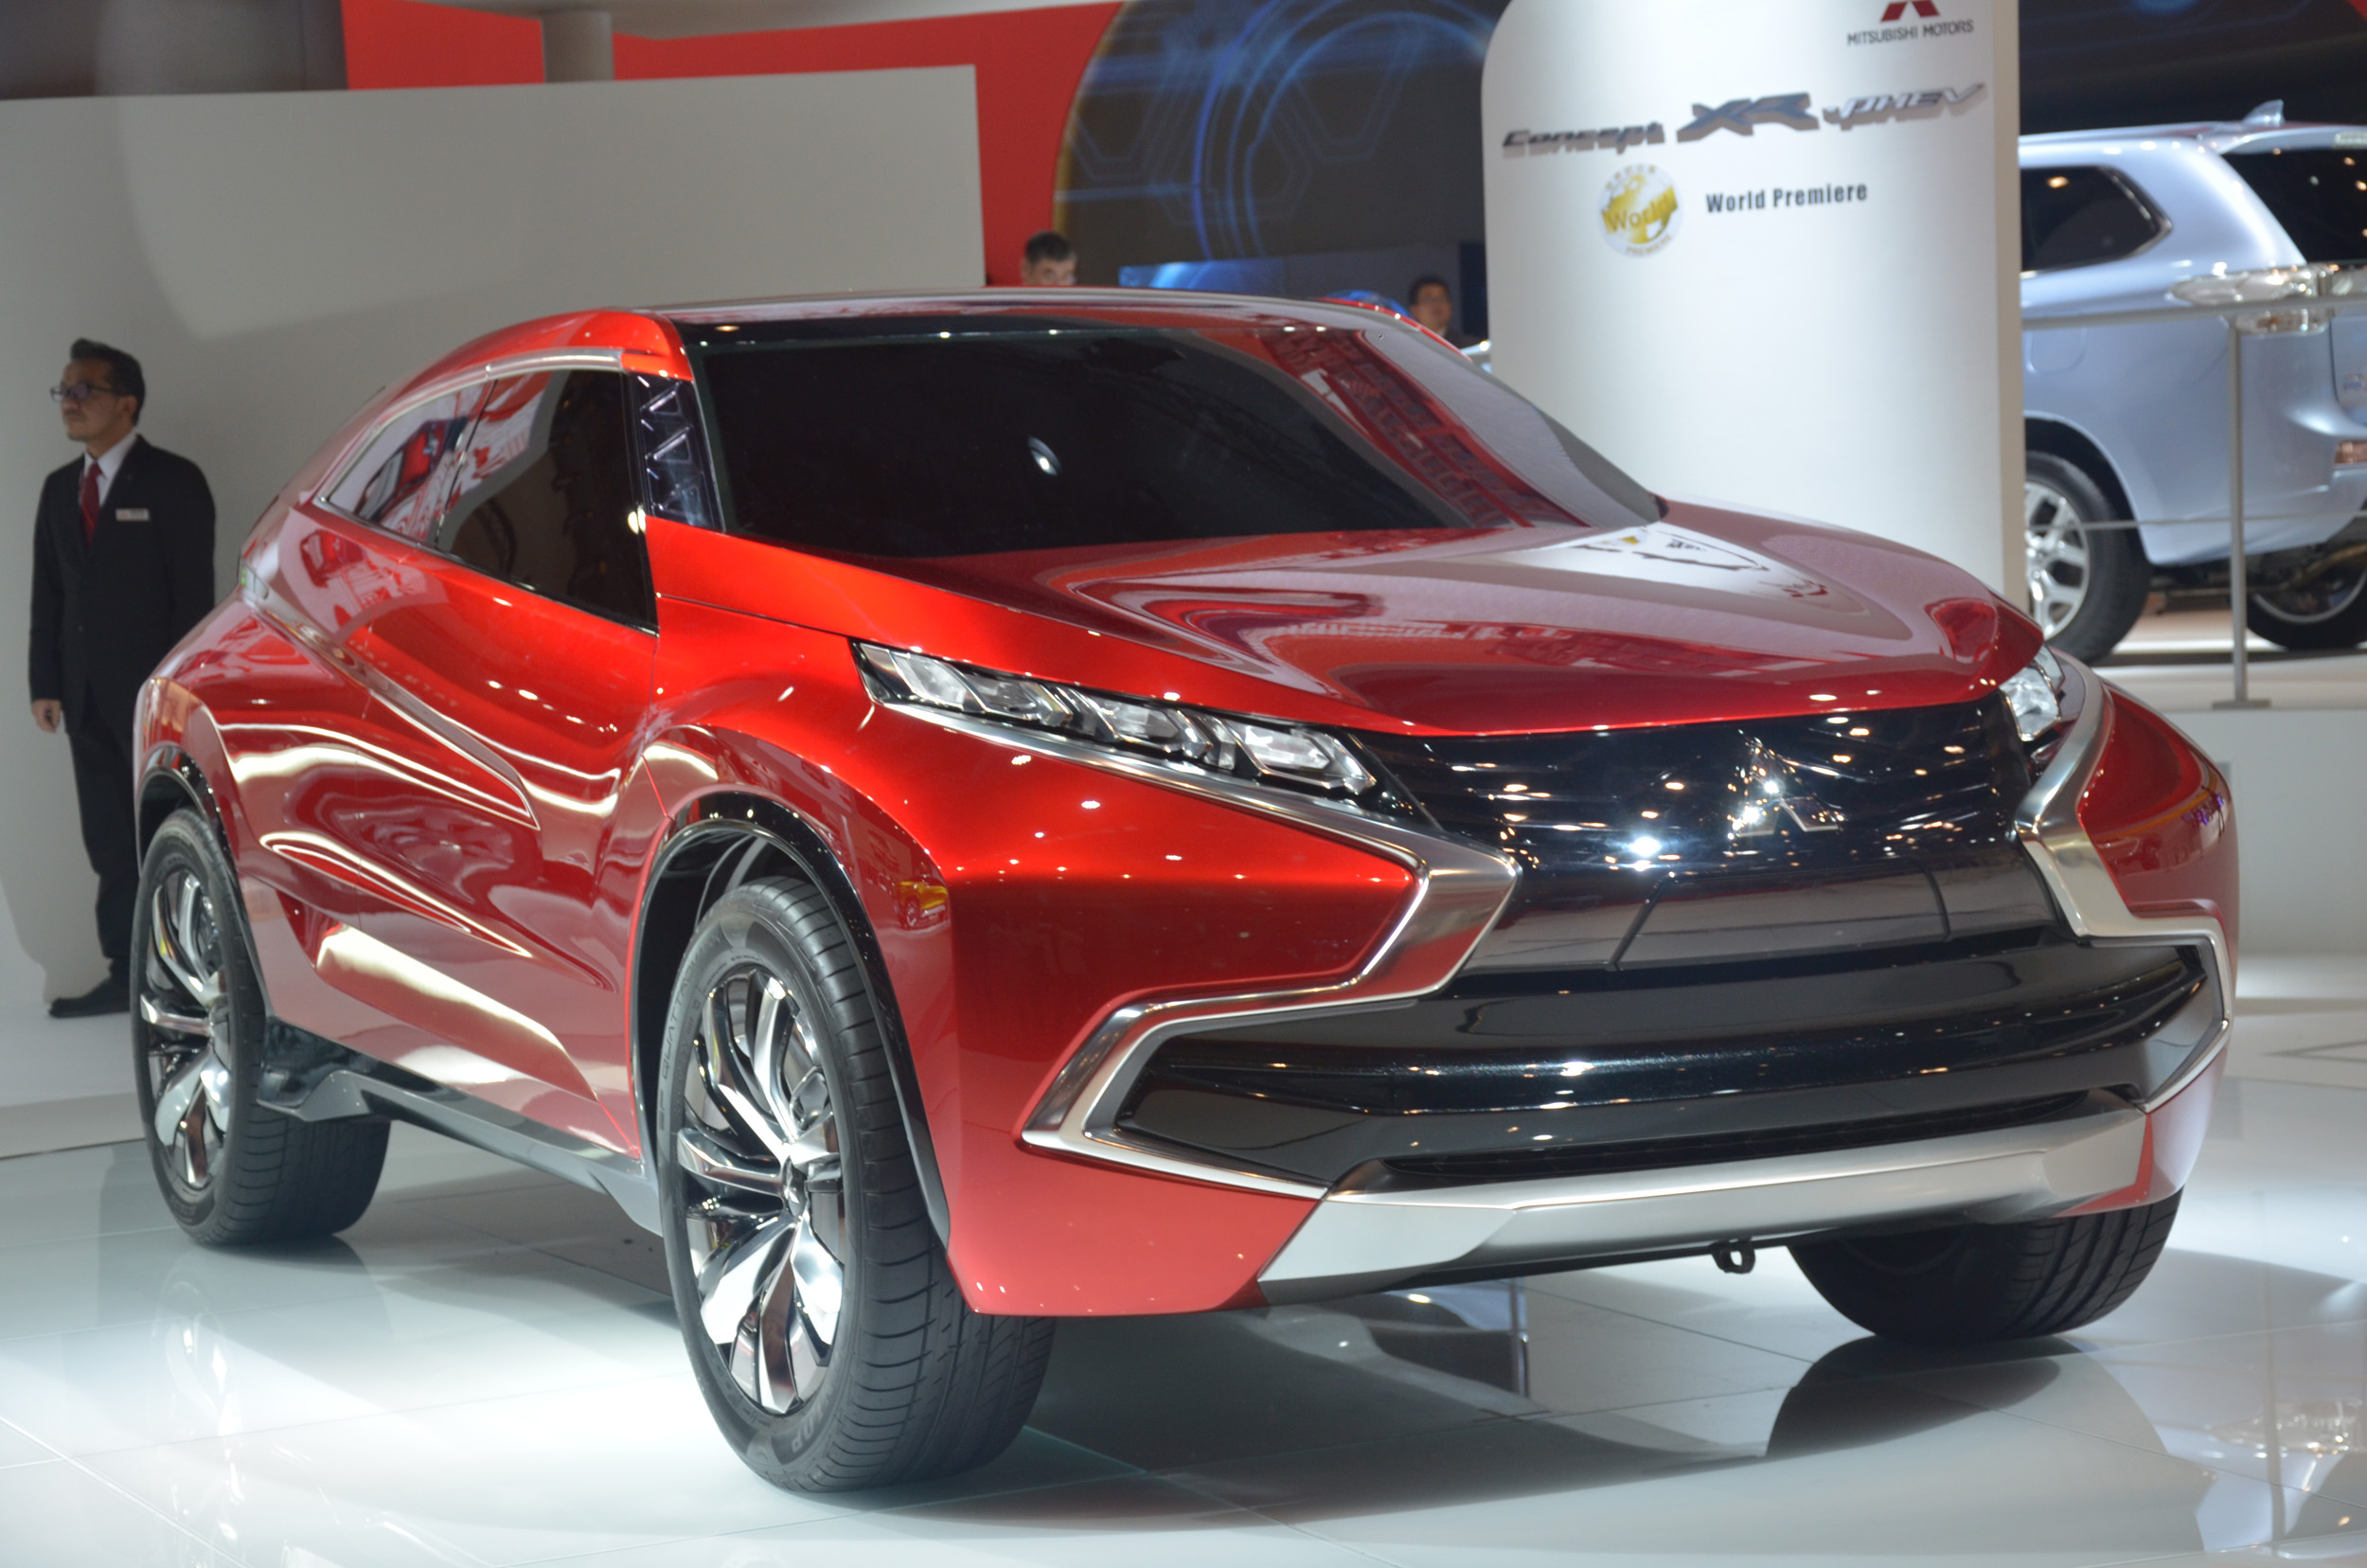 2019 Mitsubishi XR PHEV Concept | Car Photos Catalog 2017